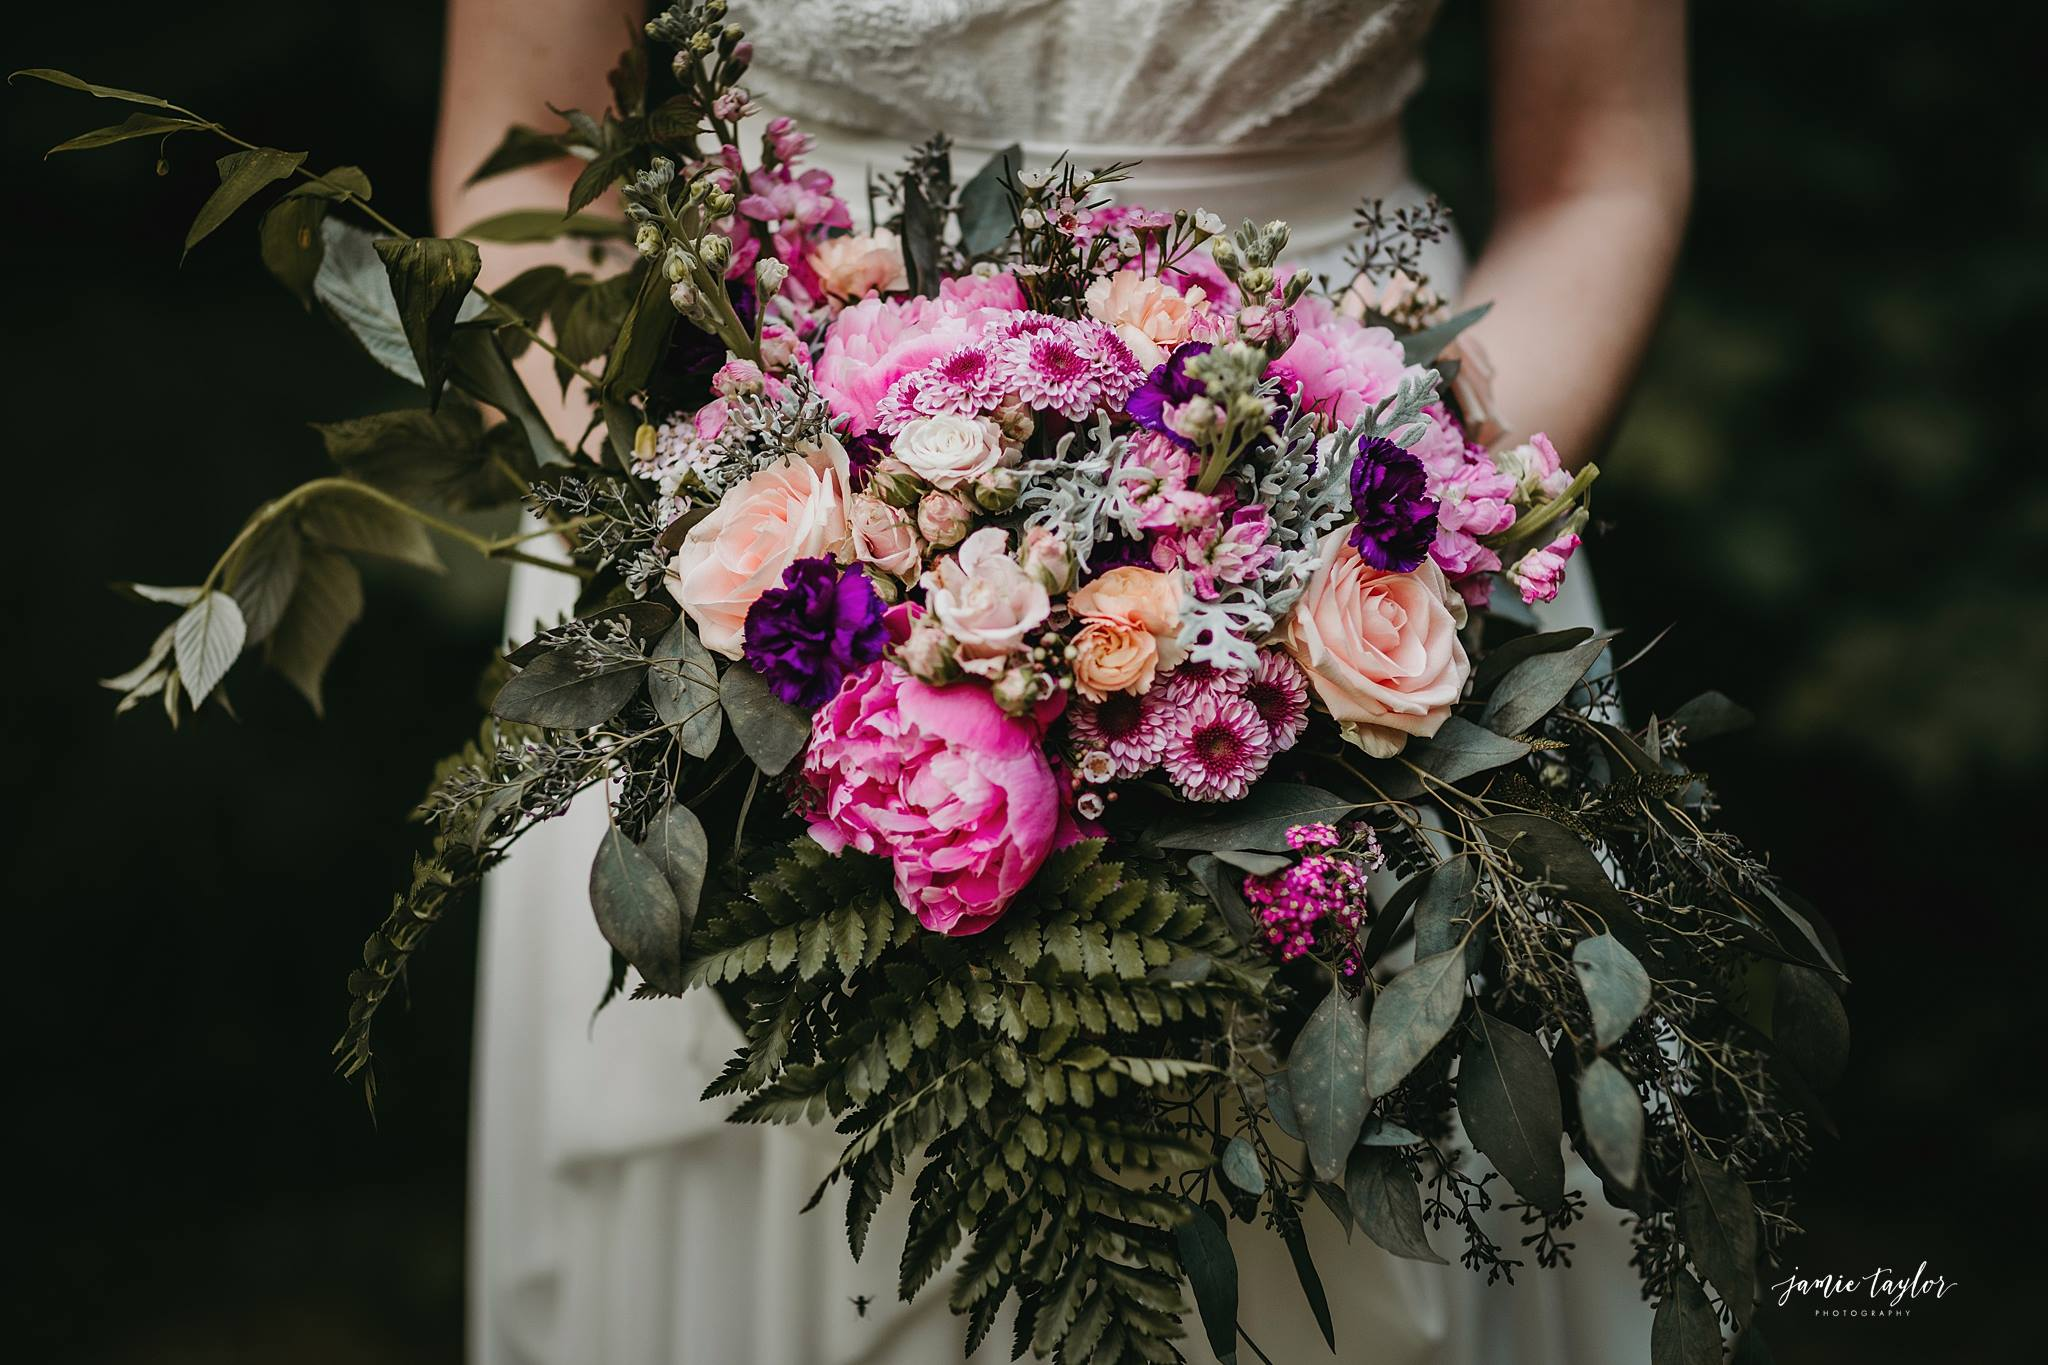 Floral design by Natasha Price of Paper Peony Alaska | Photo by Jamie Taylor Photography